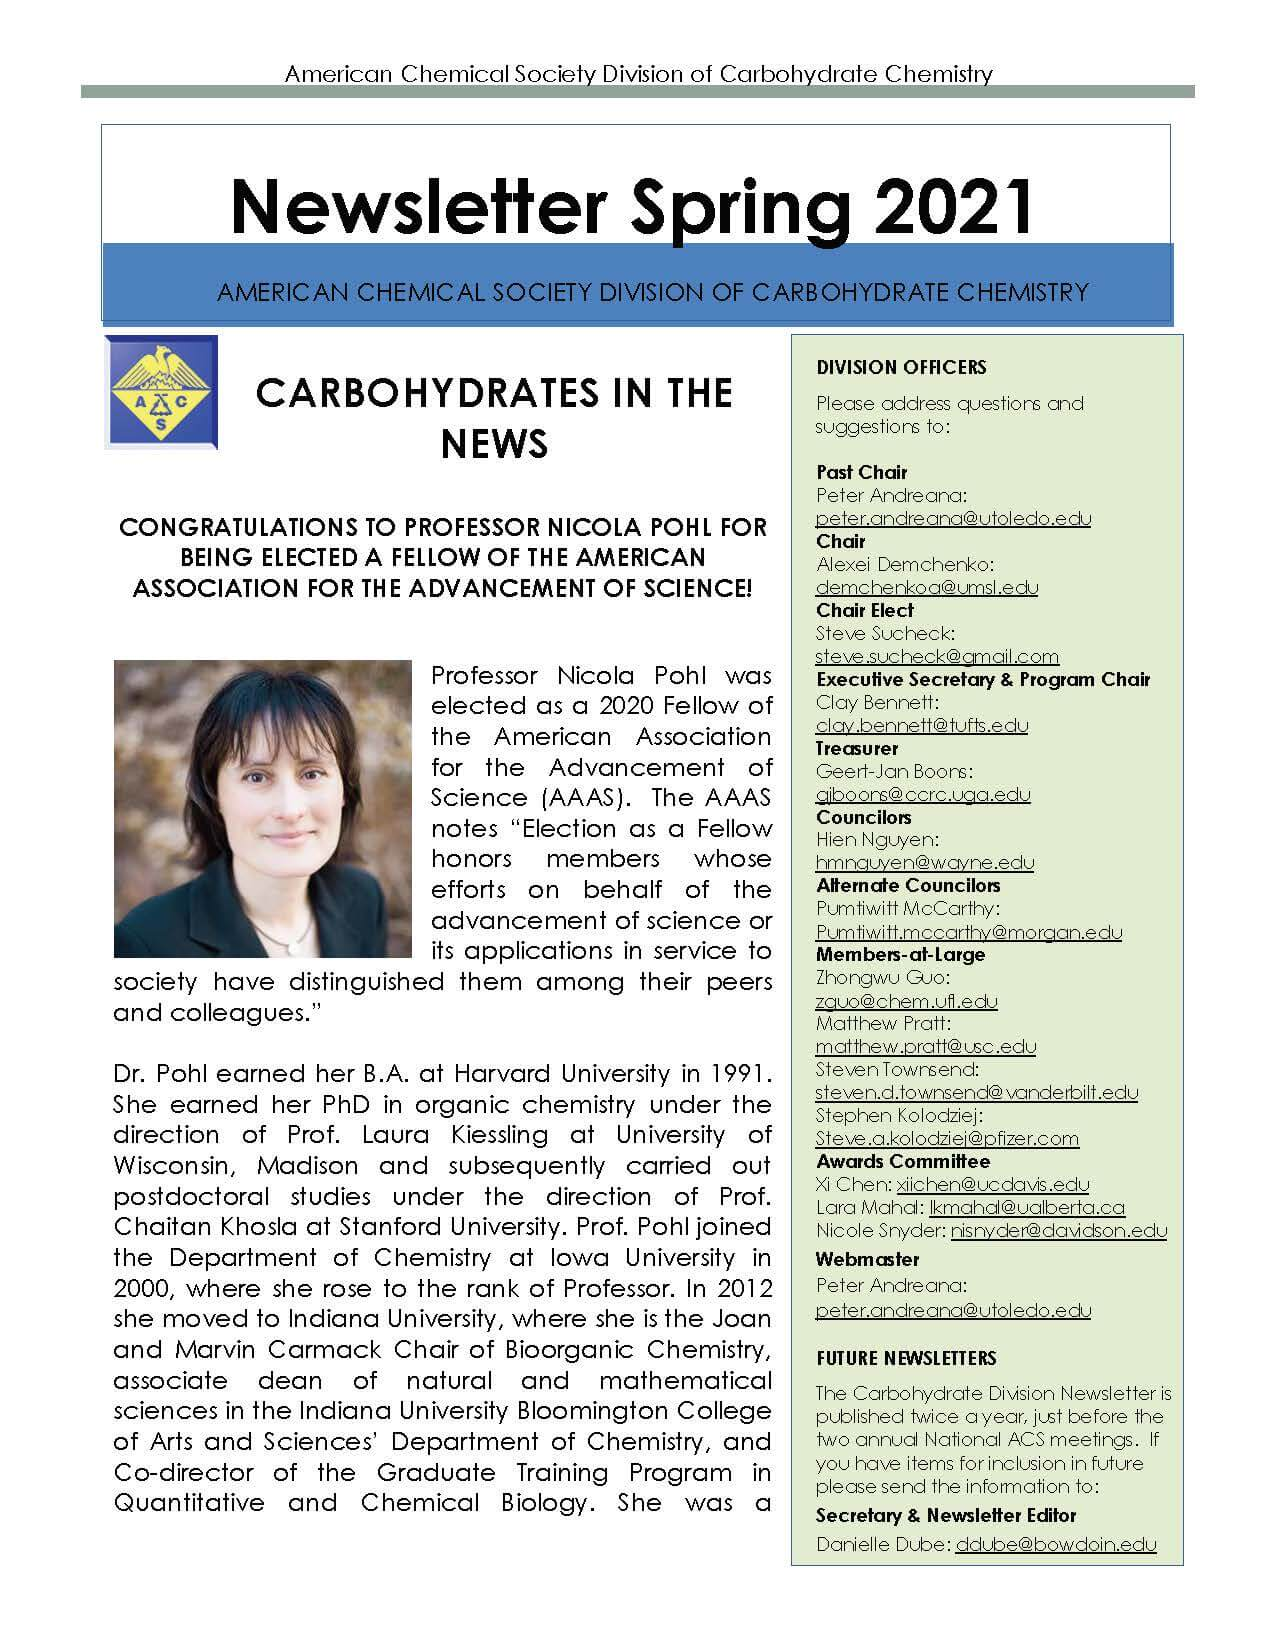 ACS CARB spring 2021 newsletter